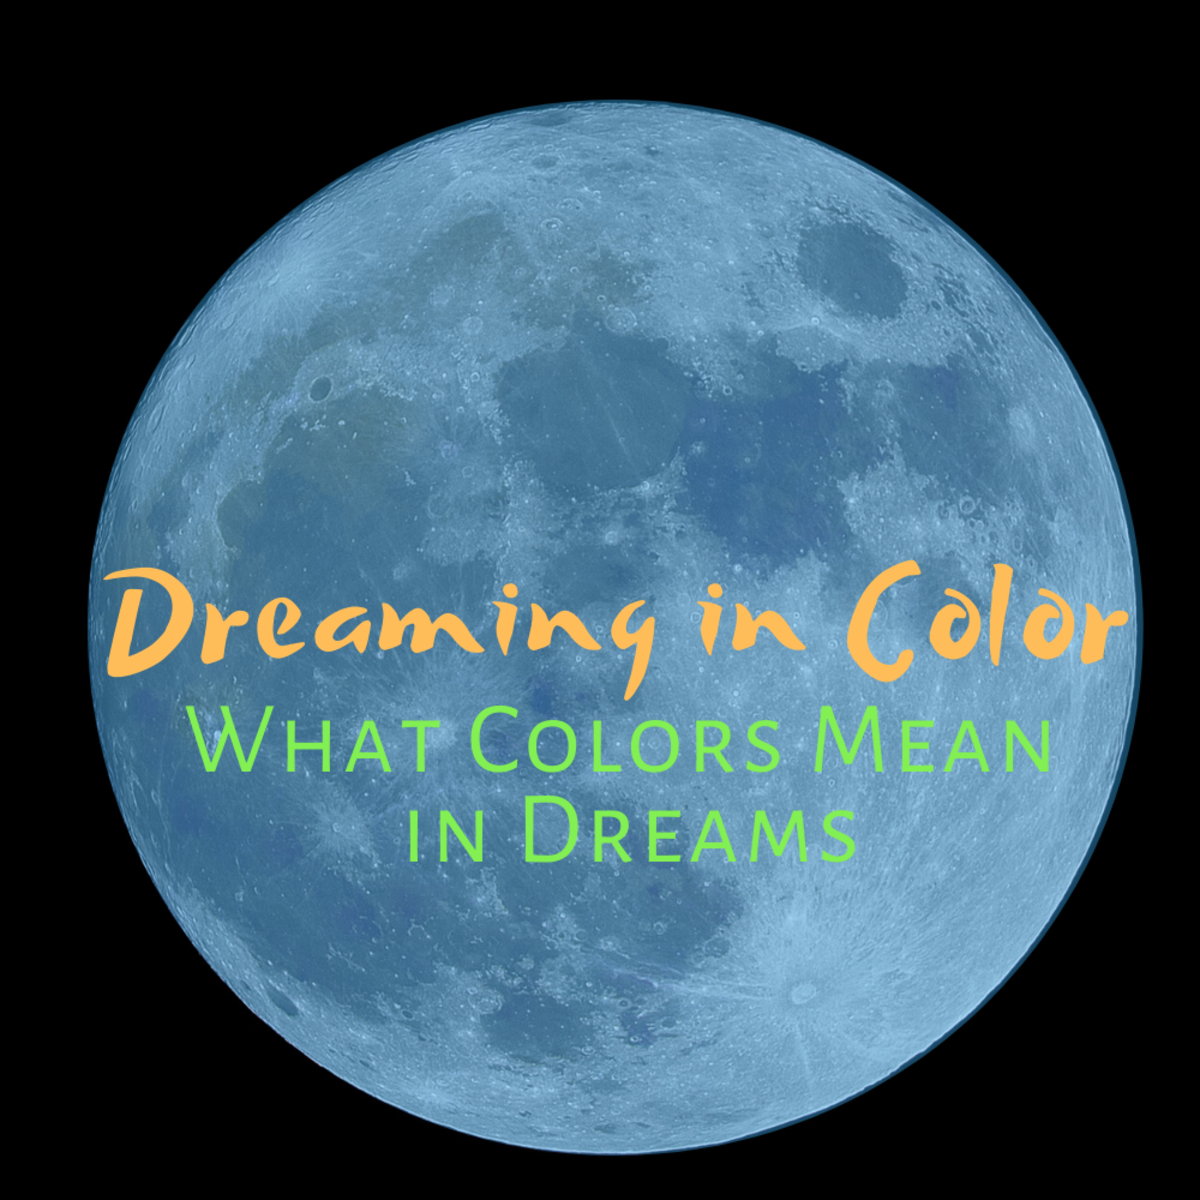 What does it mean if I dream in color?